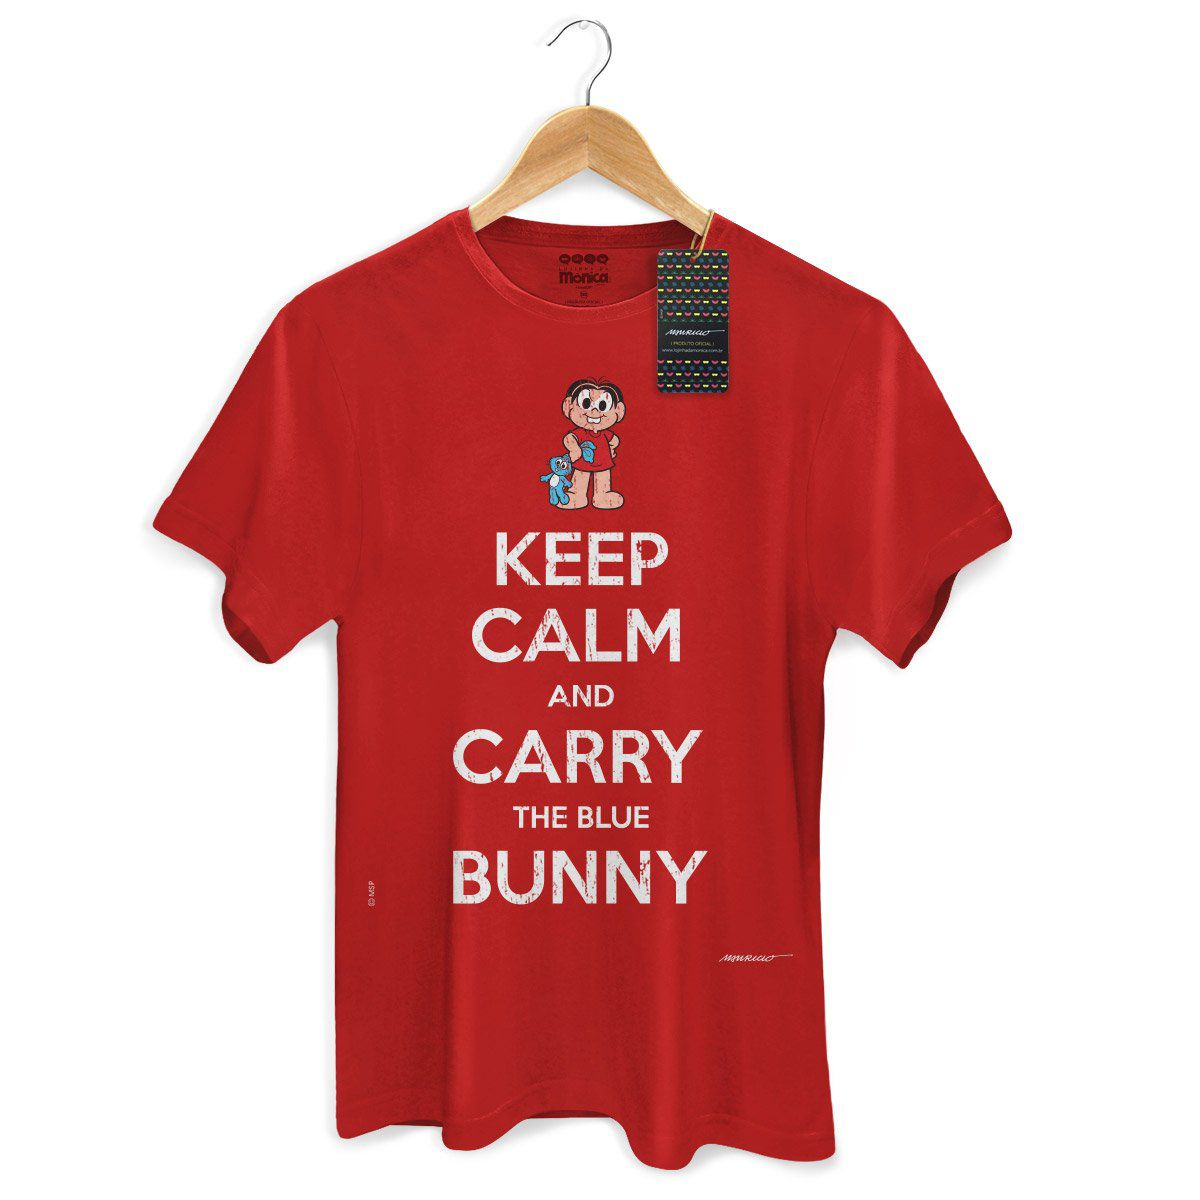 Camiseta Masculina Turma Da Mônica Cool Keep Calm And Carry The Blue Bunny